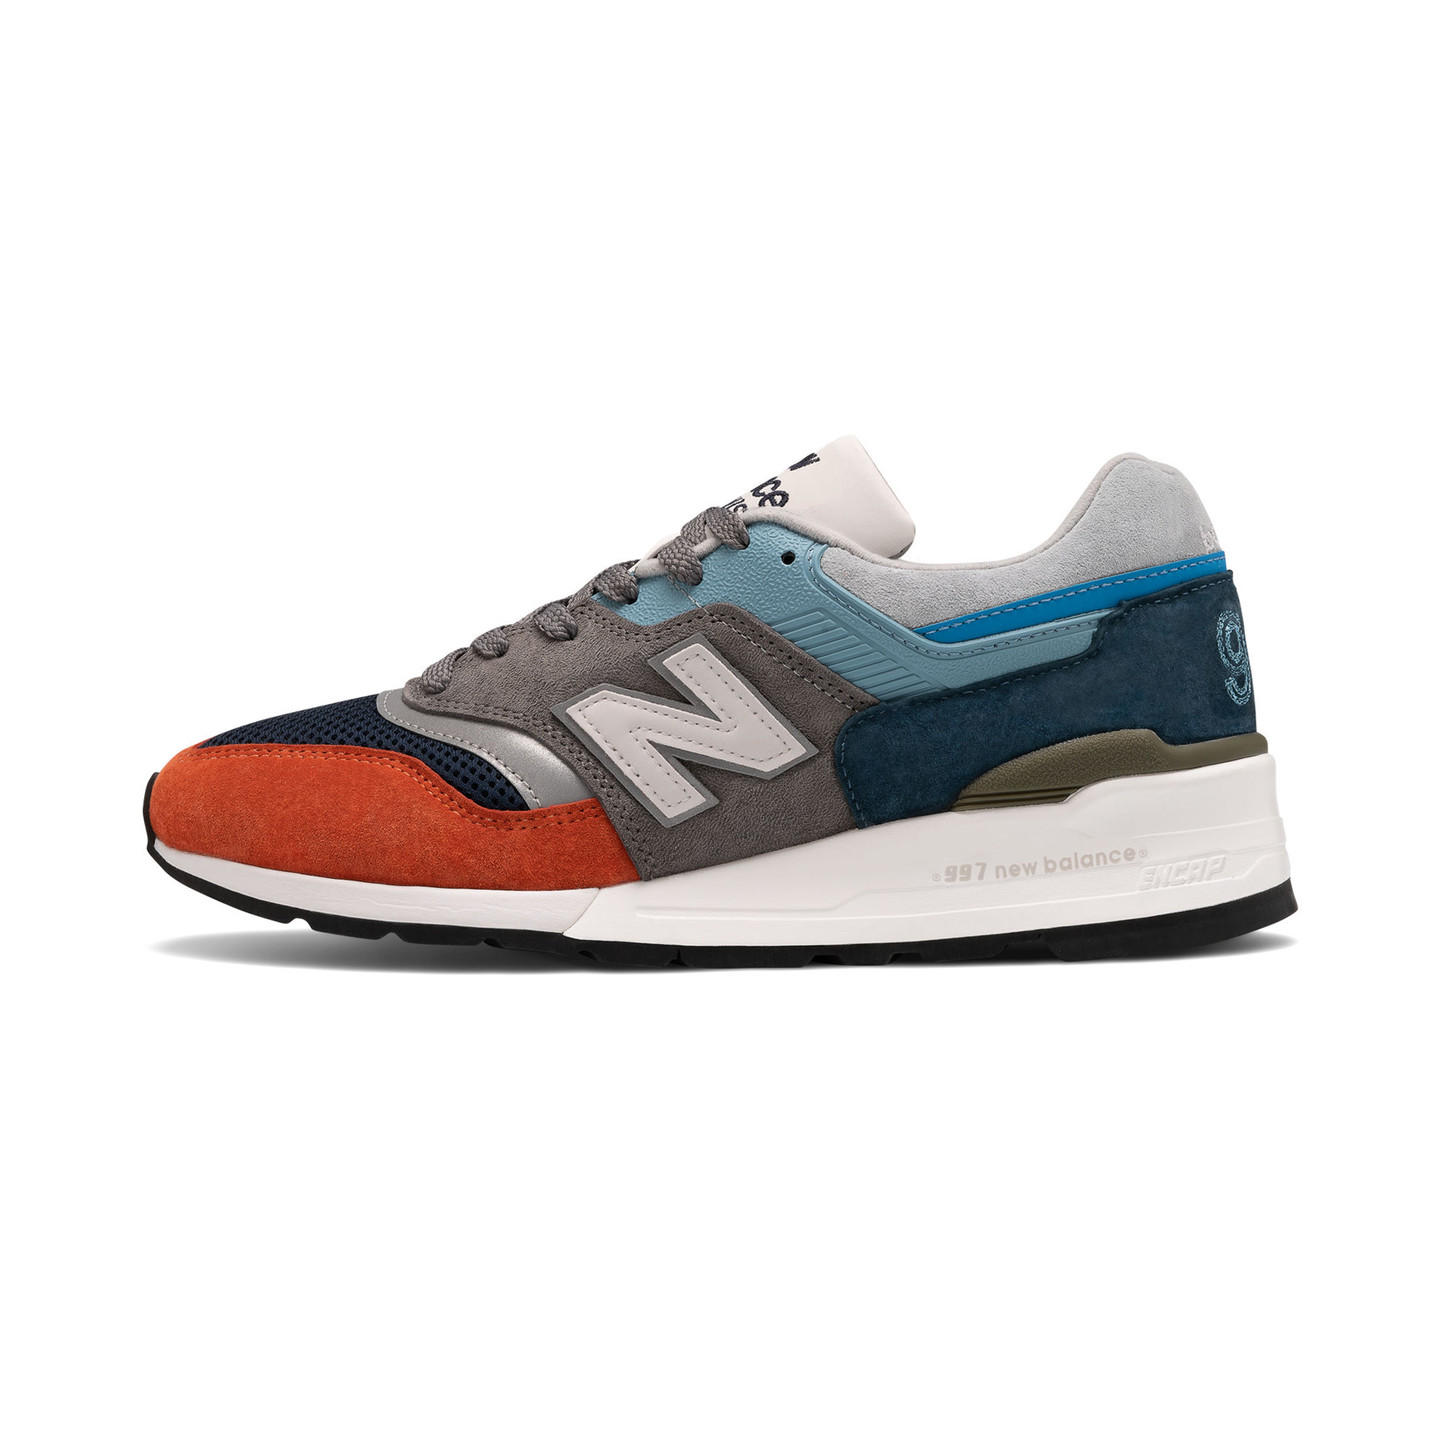 New Balance M997 - Made in USA Light Blue / Grey / Multicolor M997NAG